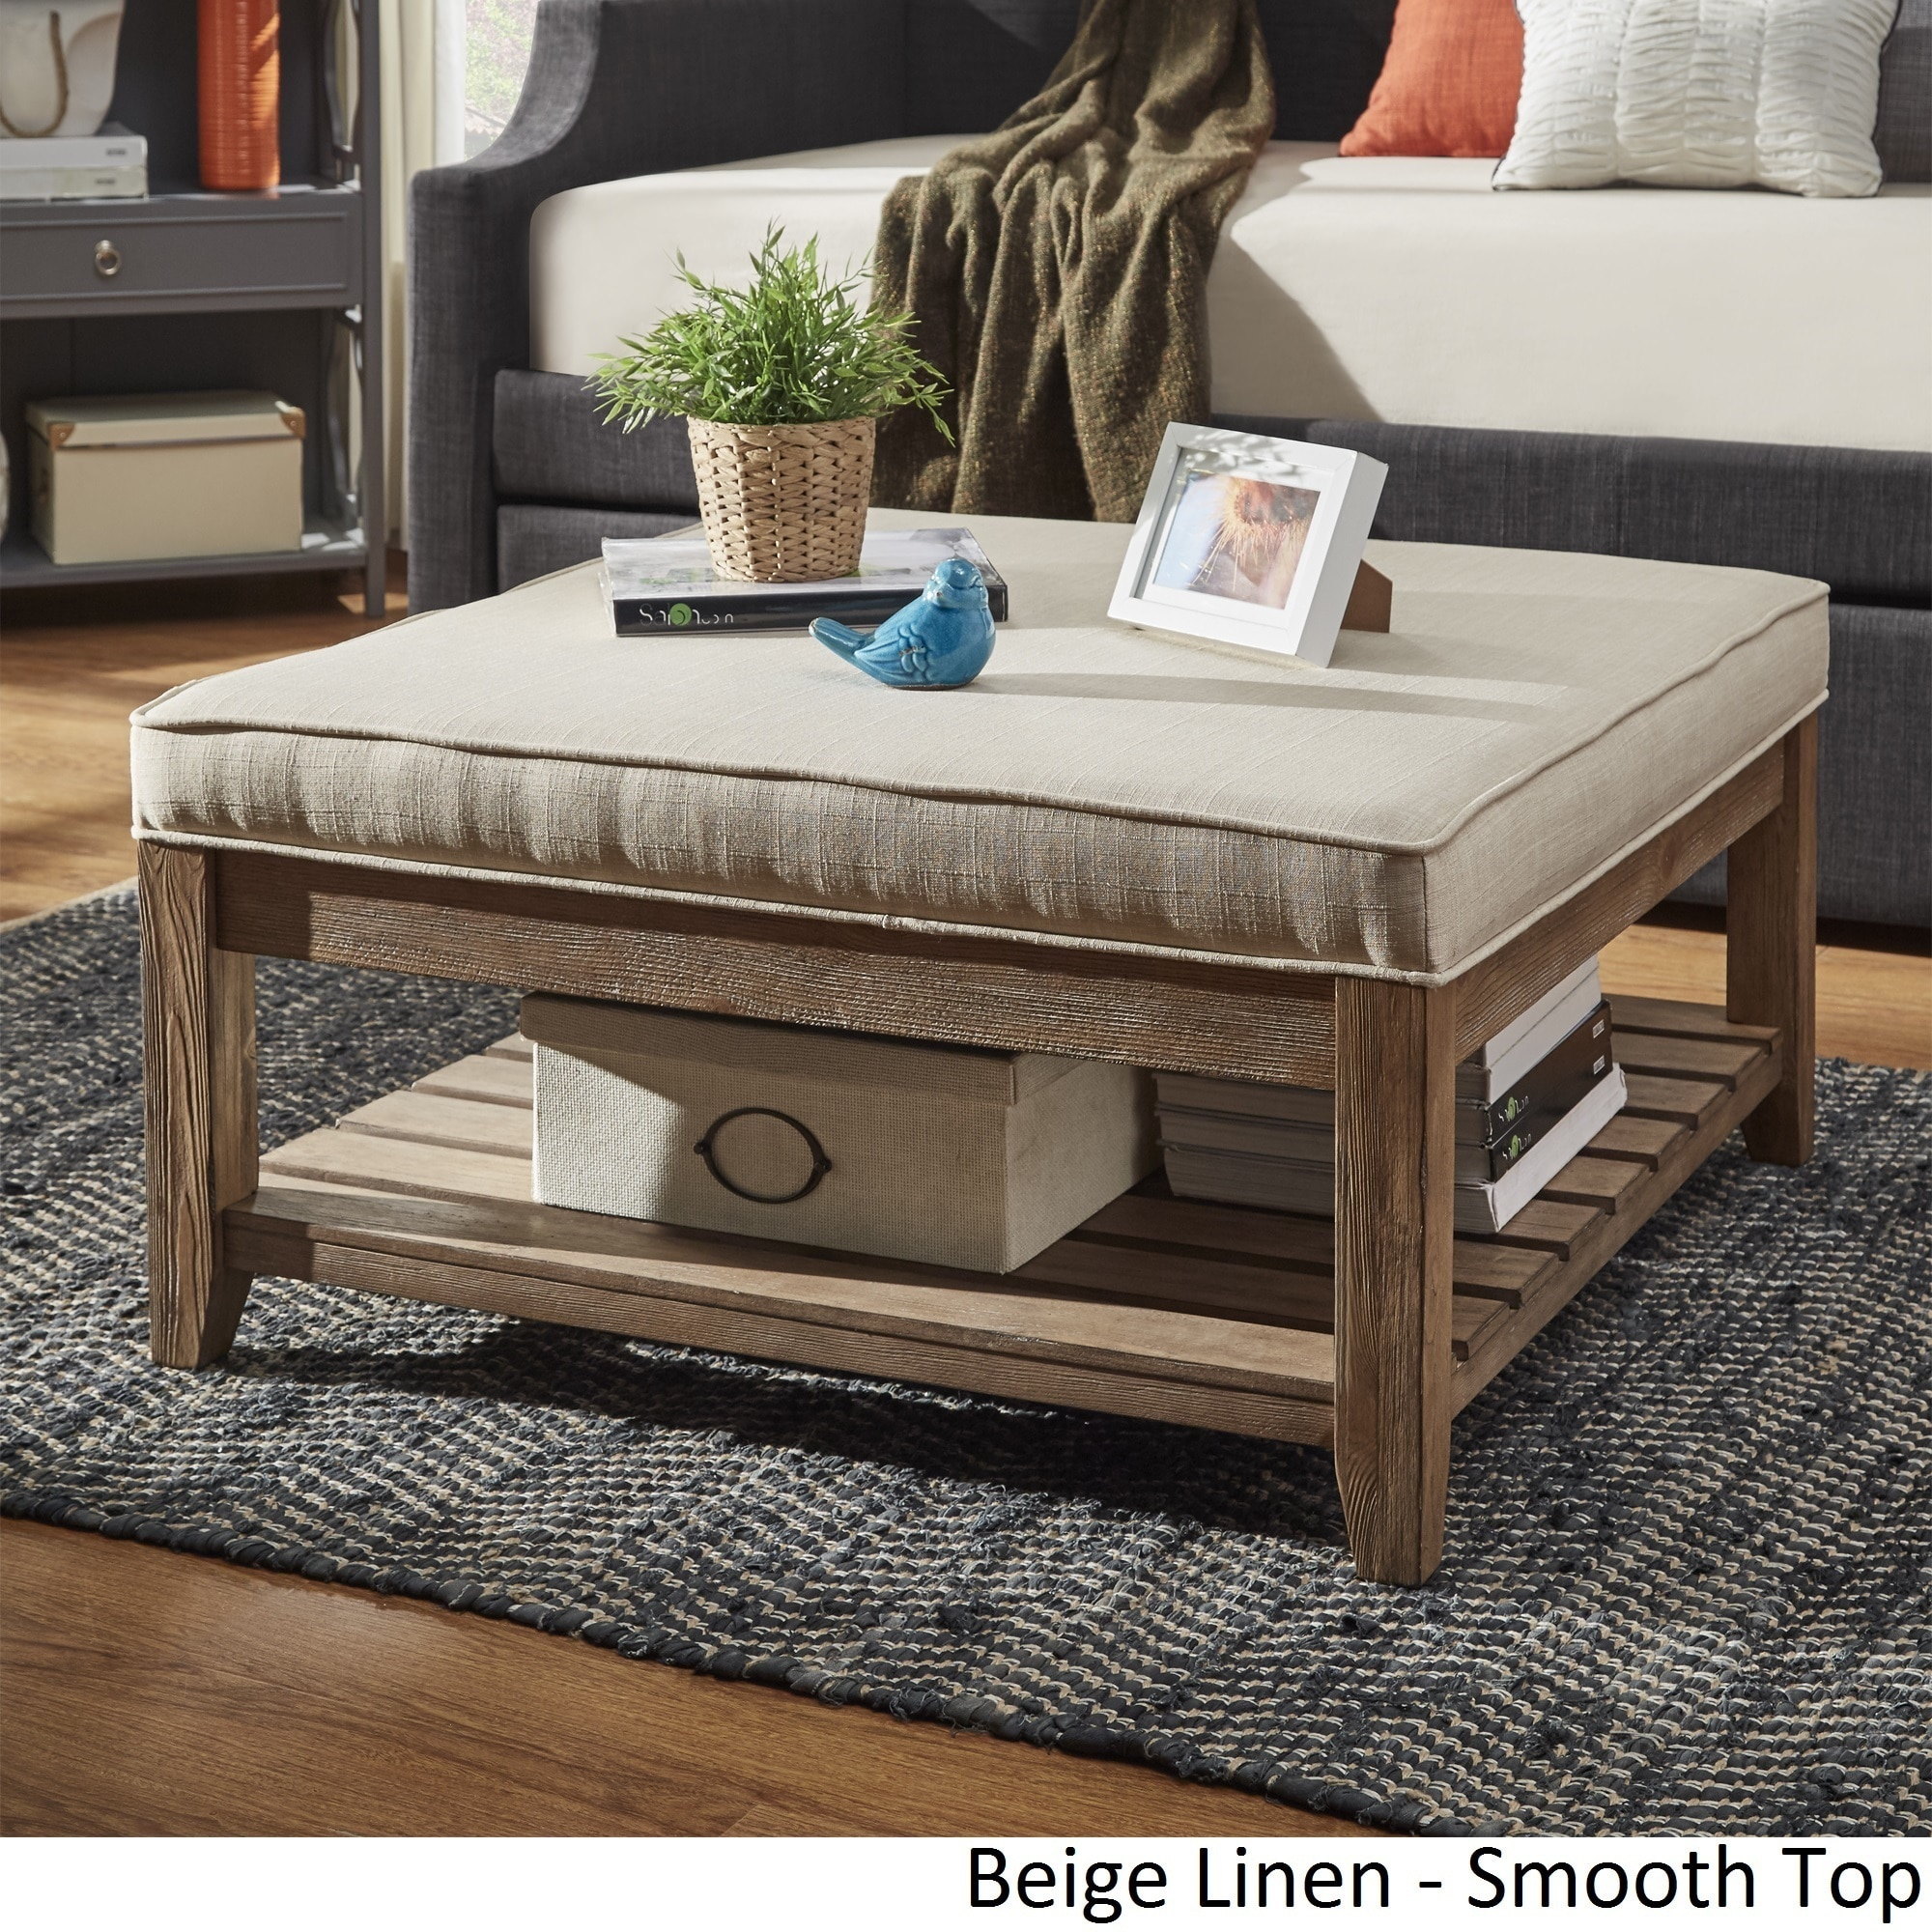 Excellent Details About Lennon Pine Planked Storage Ottoman Coffee Table By Inspire Gmtry Best Dining Table And Chair Ideas Images Gmtryco